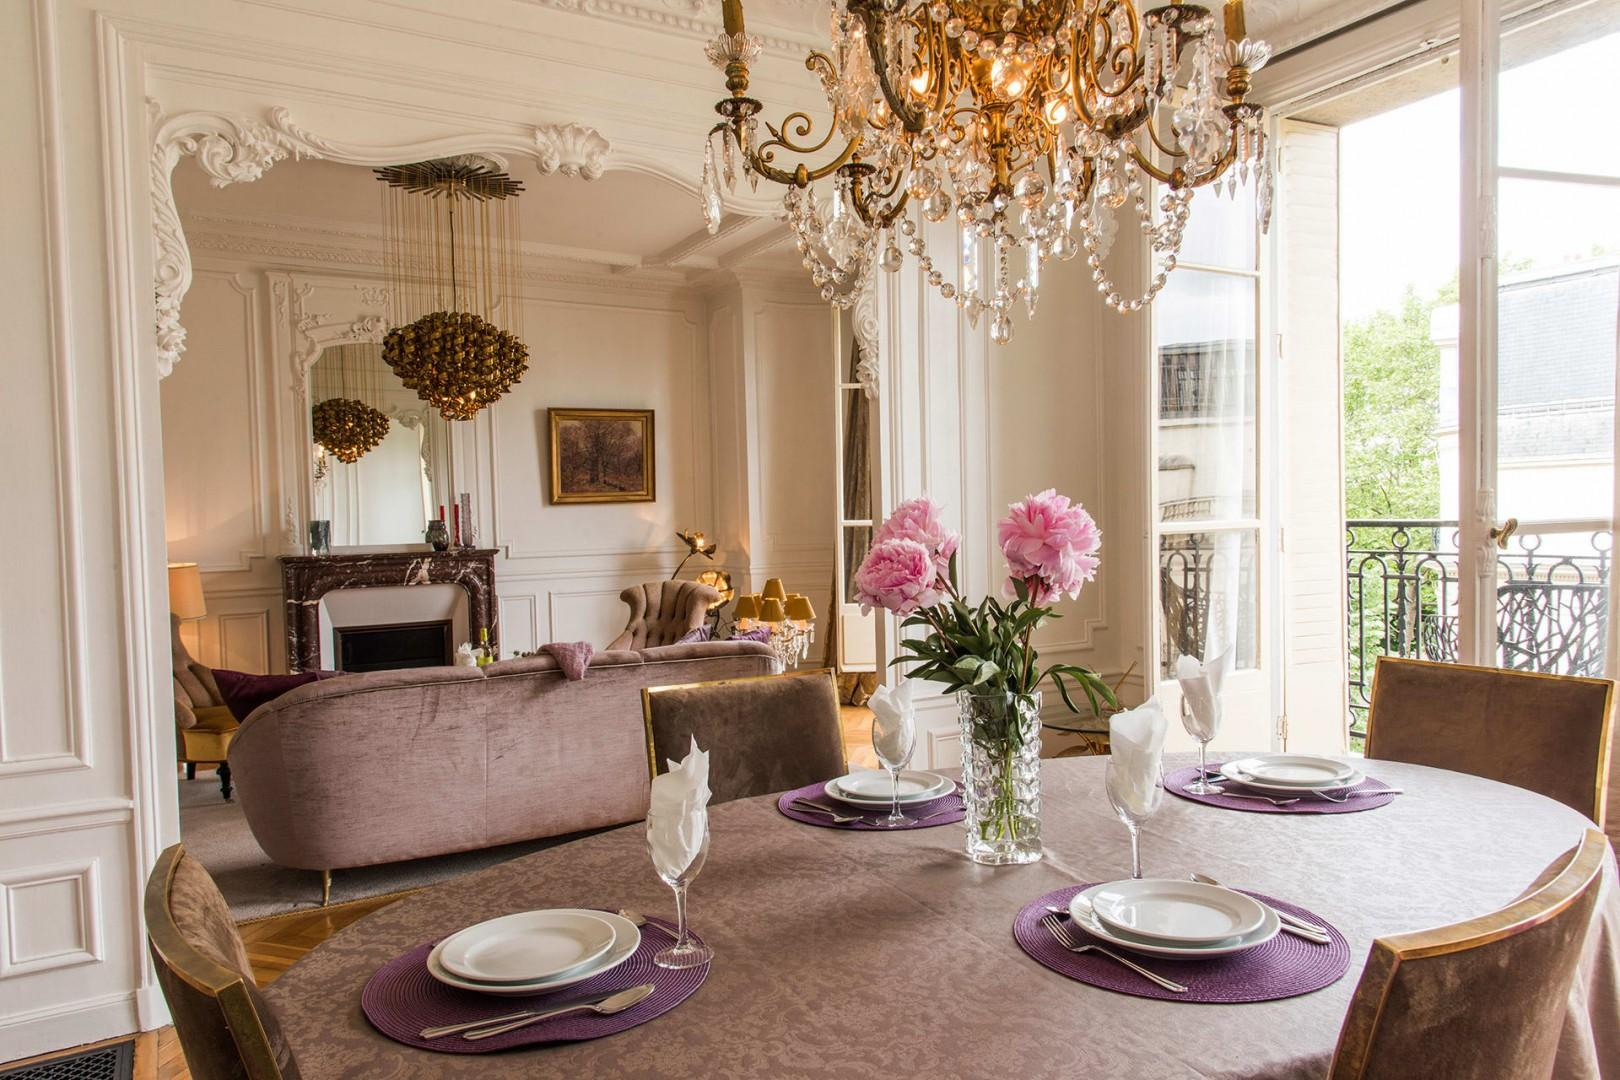 Enjoy dinner at home in this elegant space that rival any restaurant.